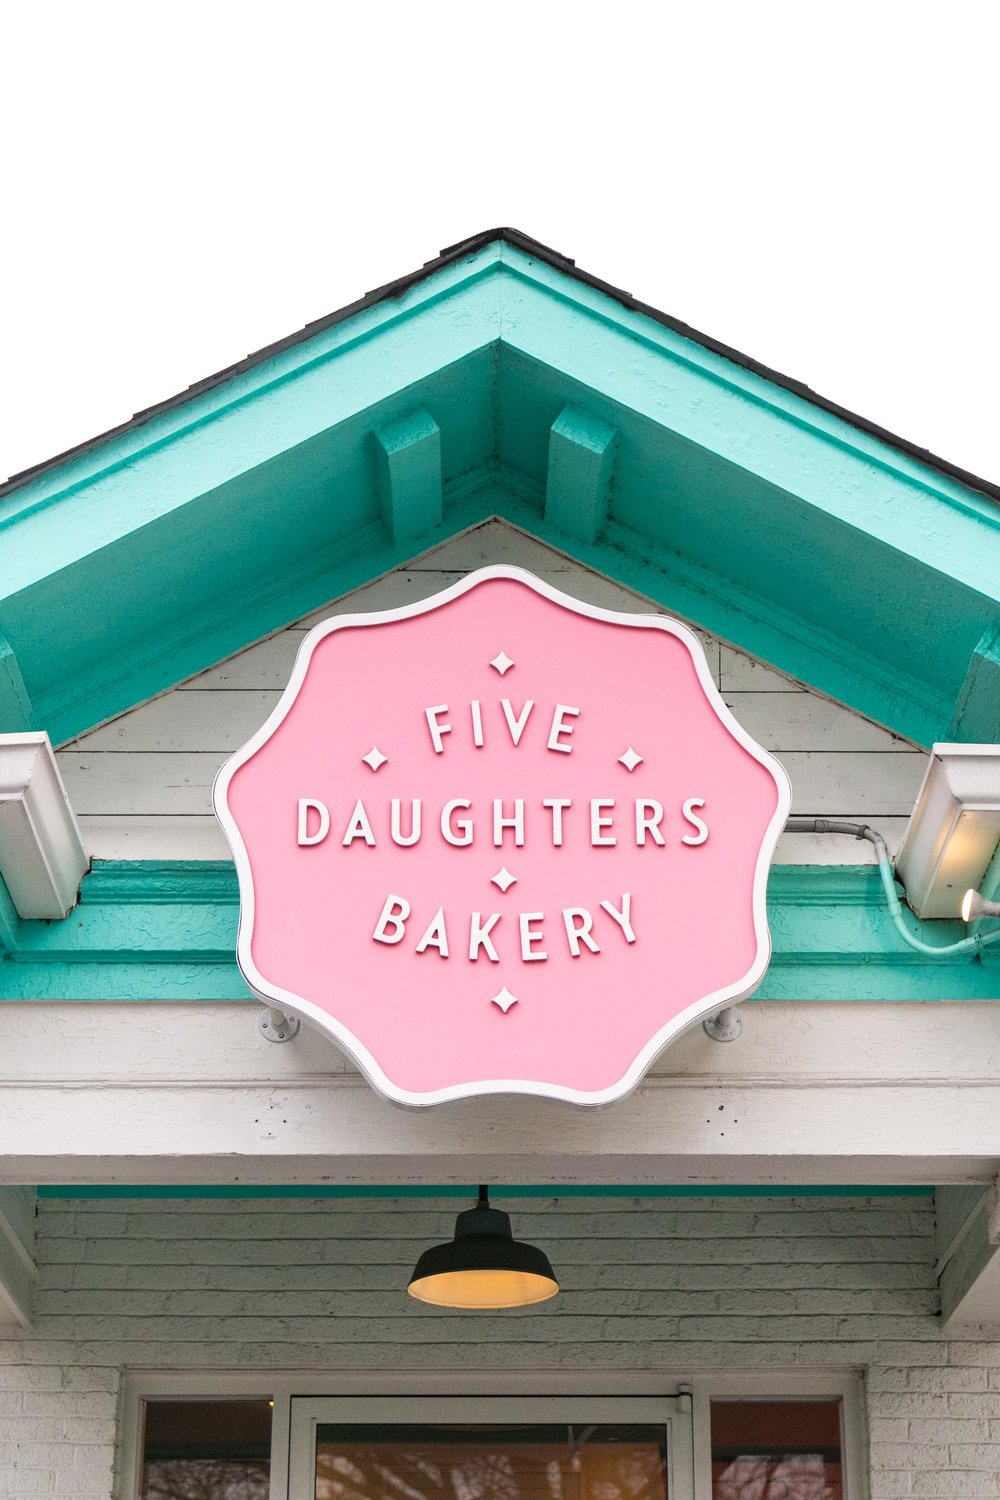 Victoria-Riza Travels | Five Daughters Bakery in Nashville, Tennessee